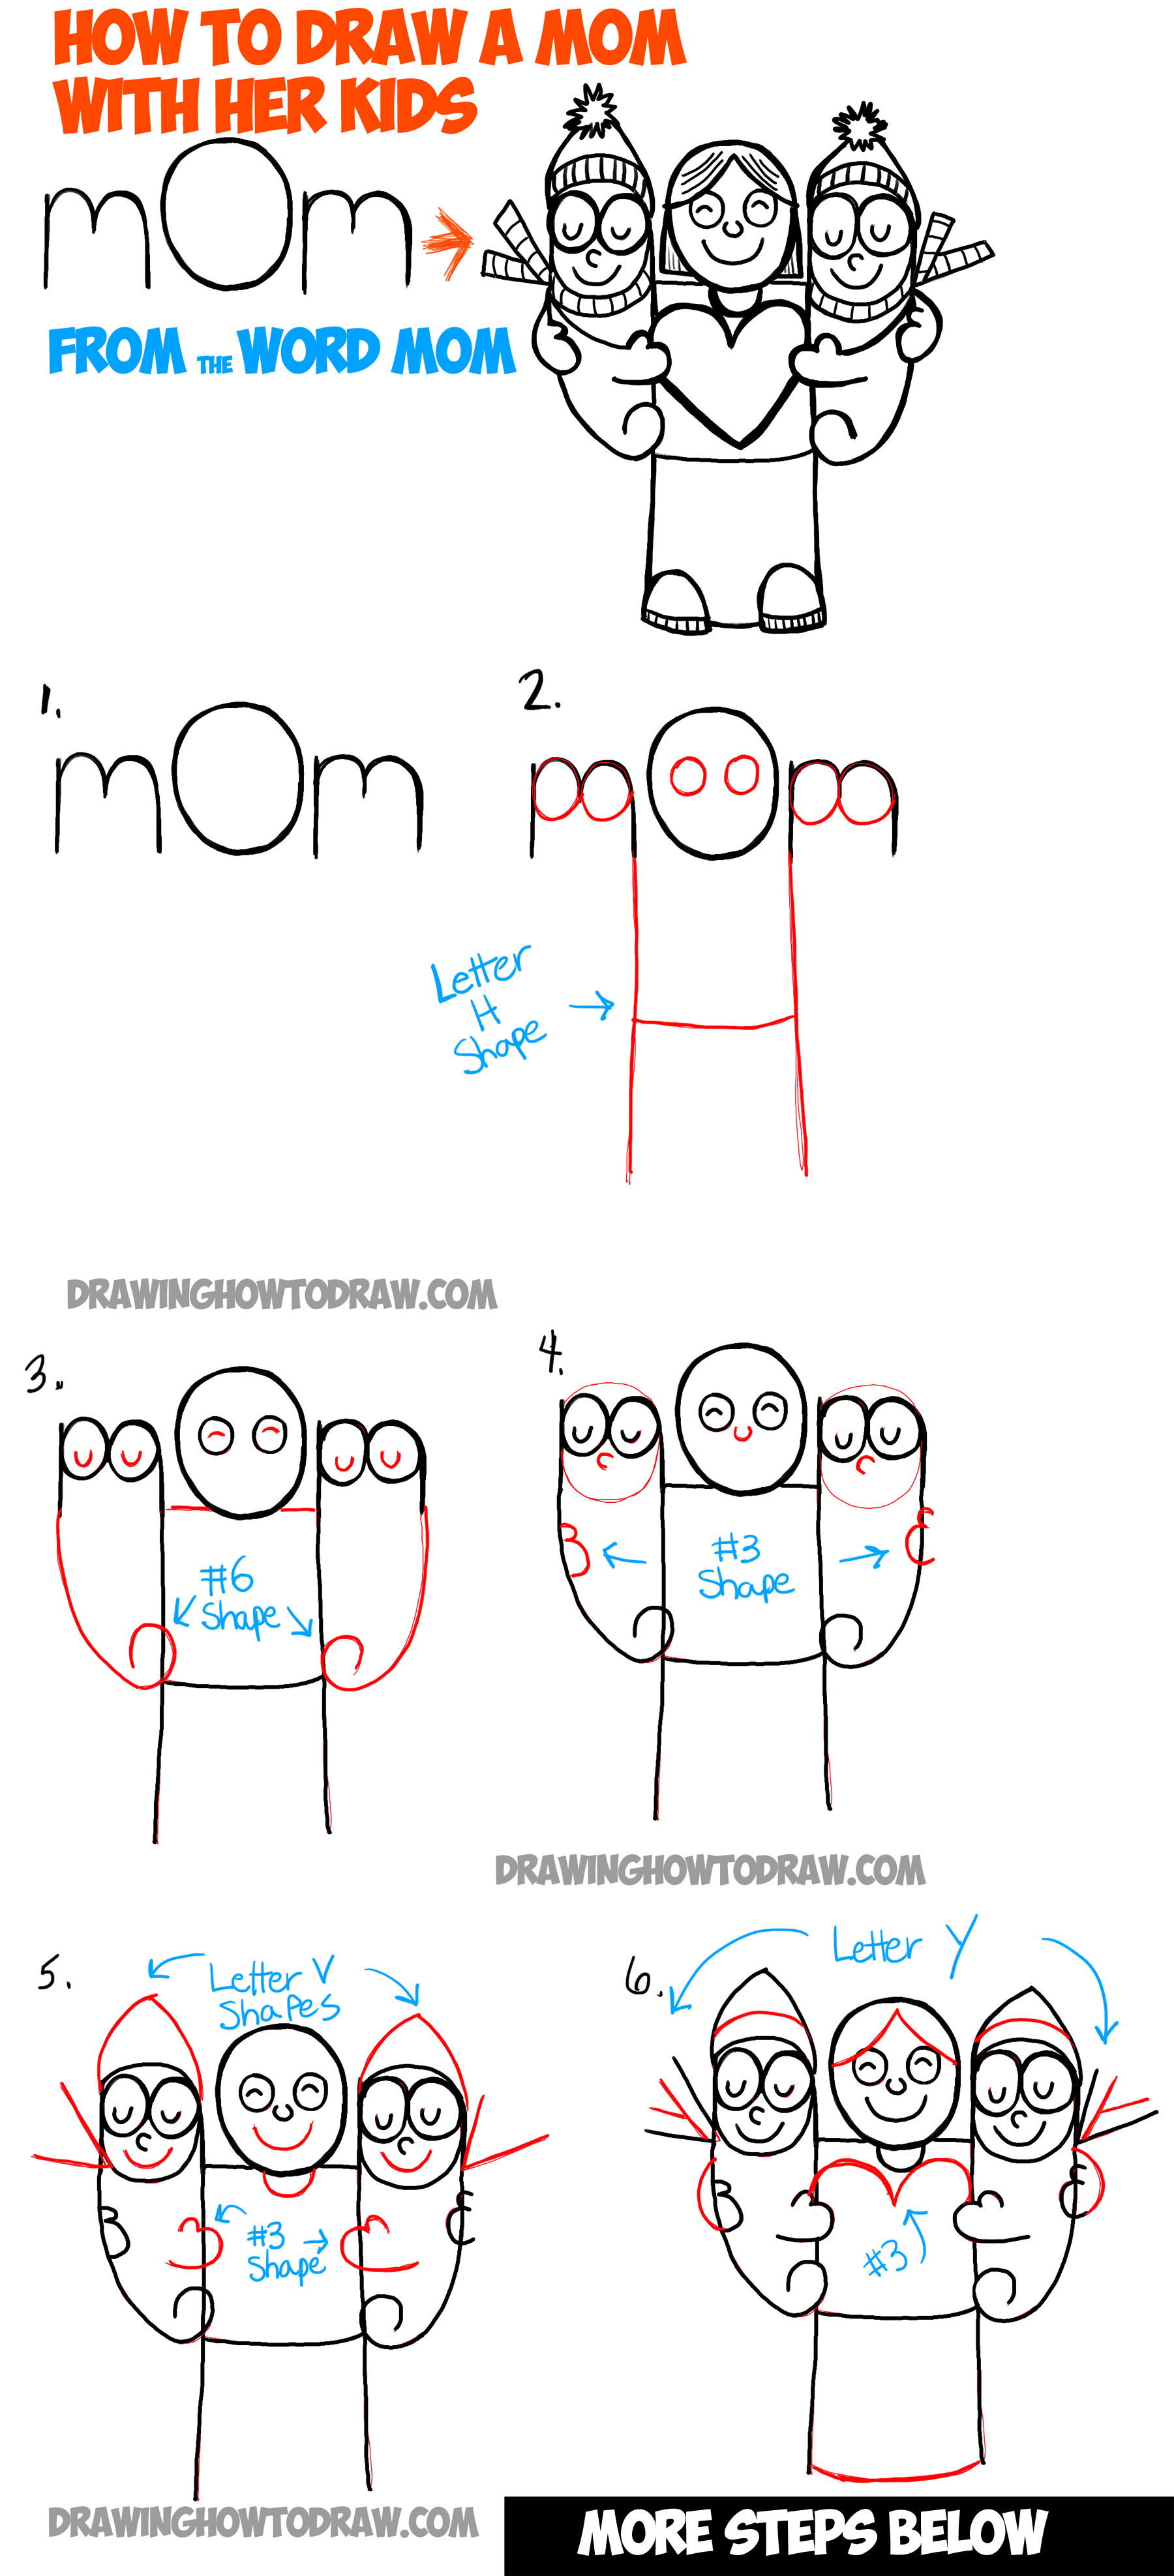 How to draw cartoon mom and kids from the word mom easy drawing how to draw cartoon mom and kids from the word mom simple step by step biocorpaavc Choice Image